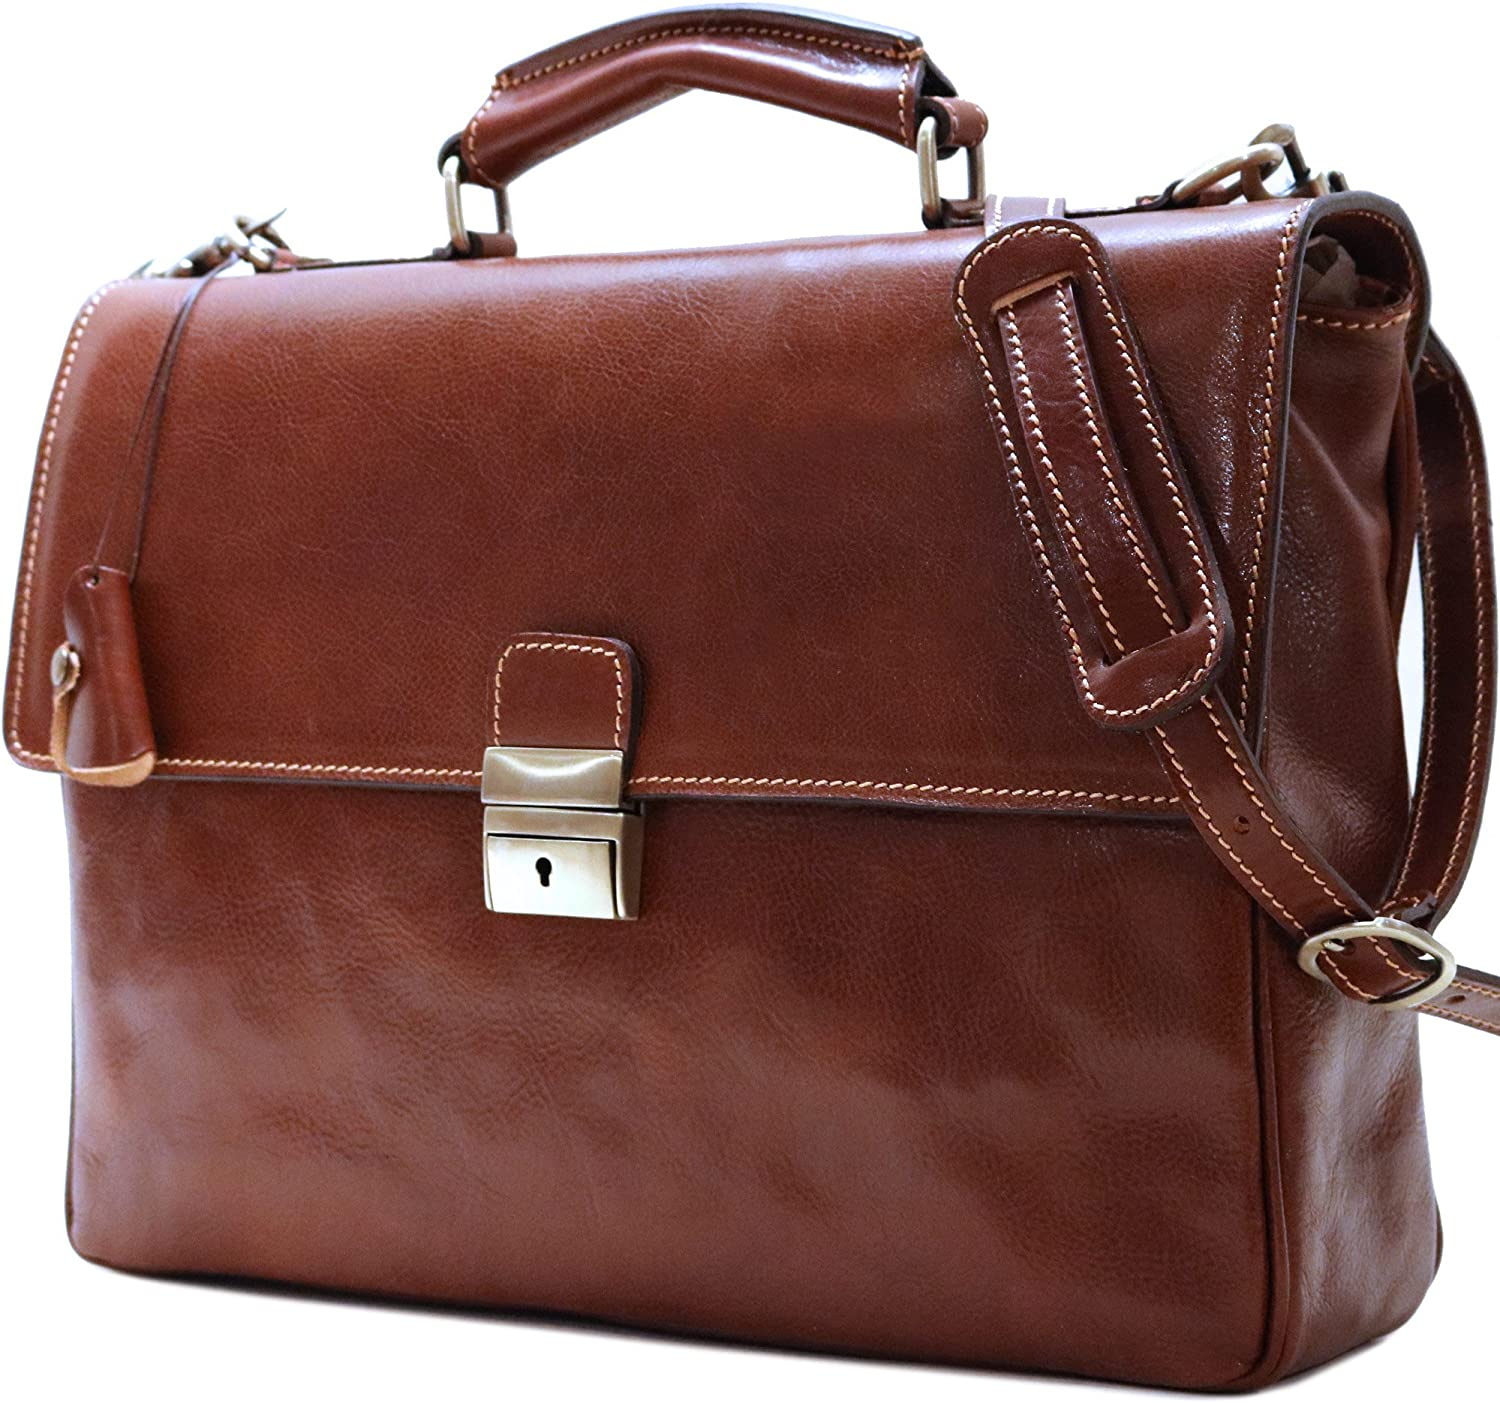 Cenzo Leather Briefcase Messenger Bag in Vecchio Brown